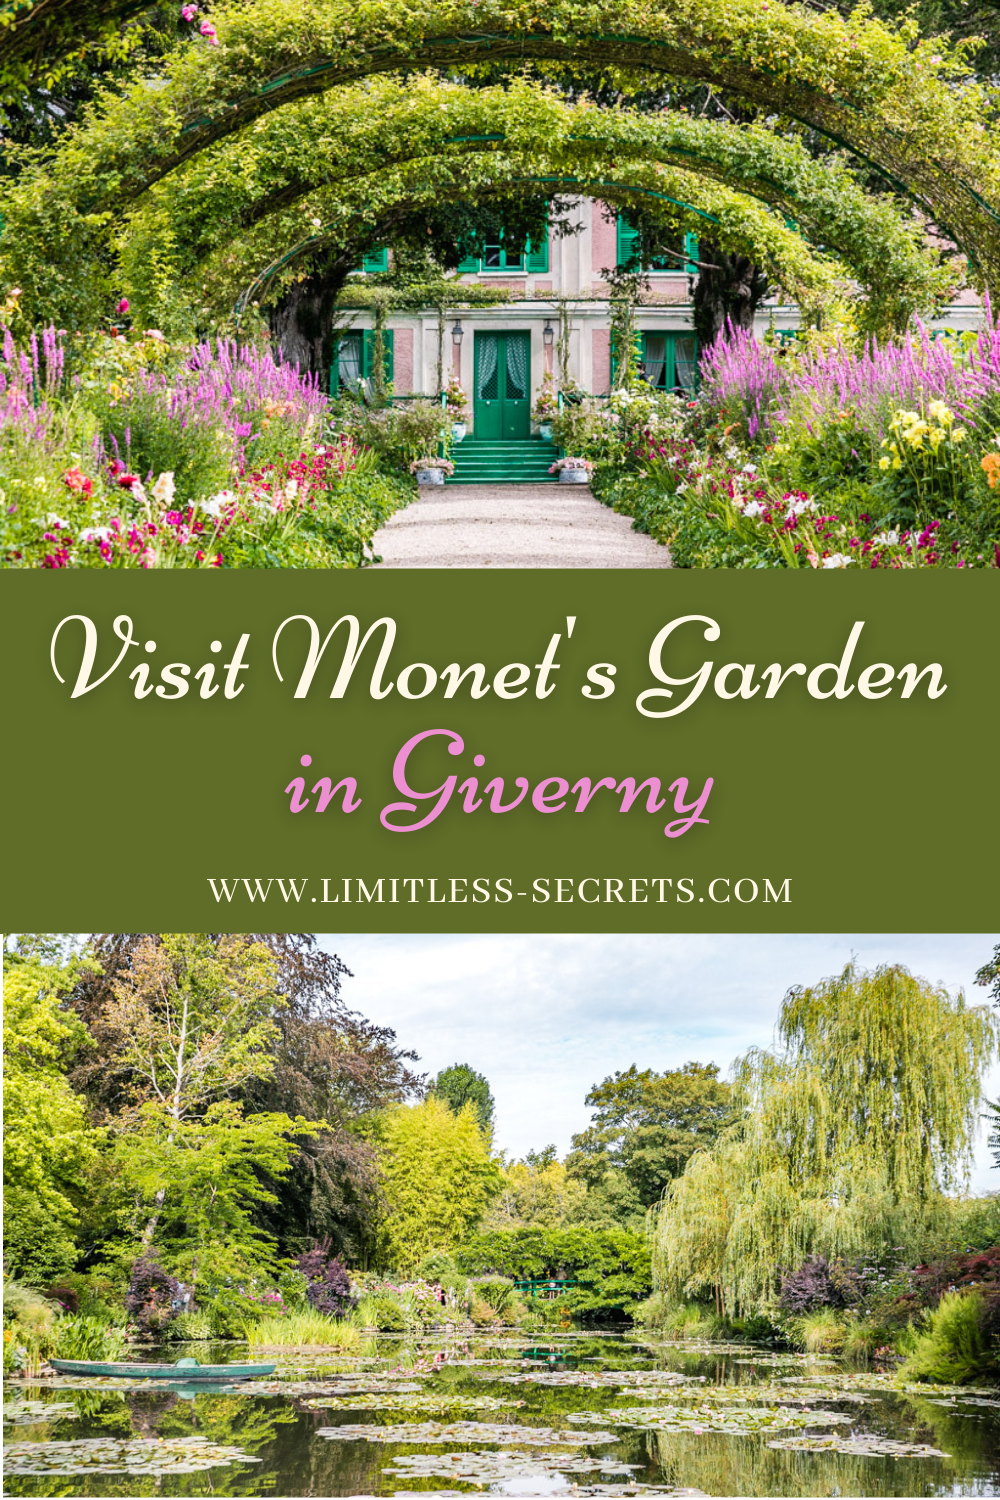 The garden of Claude Monet, the famous French impressionist painter, is a beautiful place to visit in Giverny, France. In this guide I give you all the information and tips you need to visit Monet's house and garden.